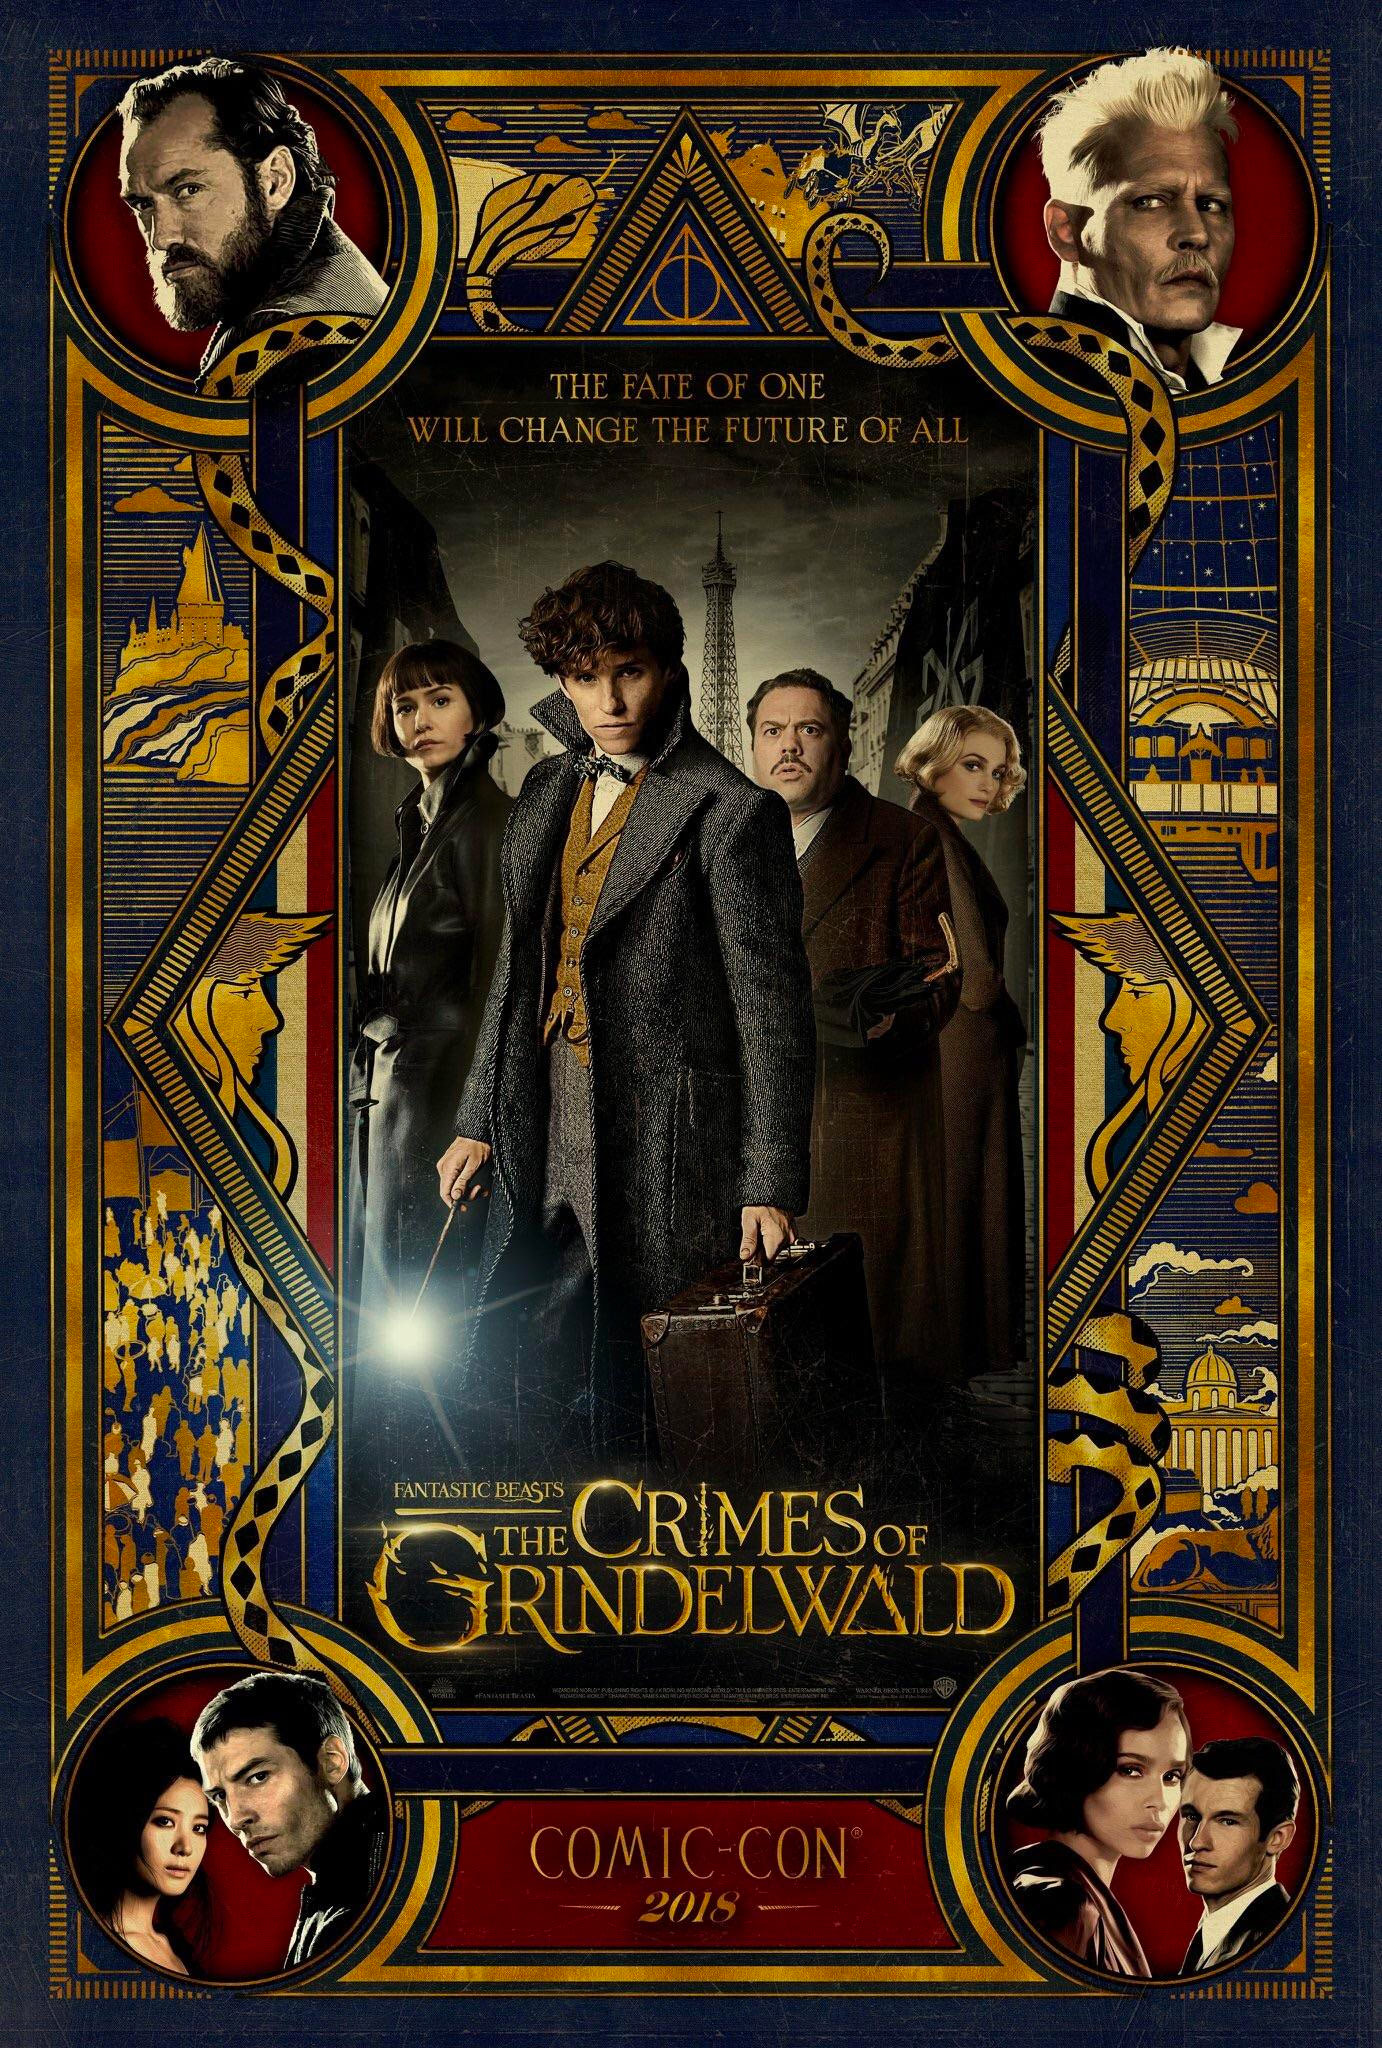 'Crimes of Grindelwald' Comic Con poster